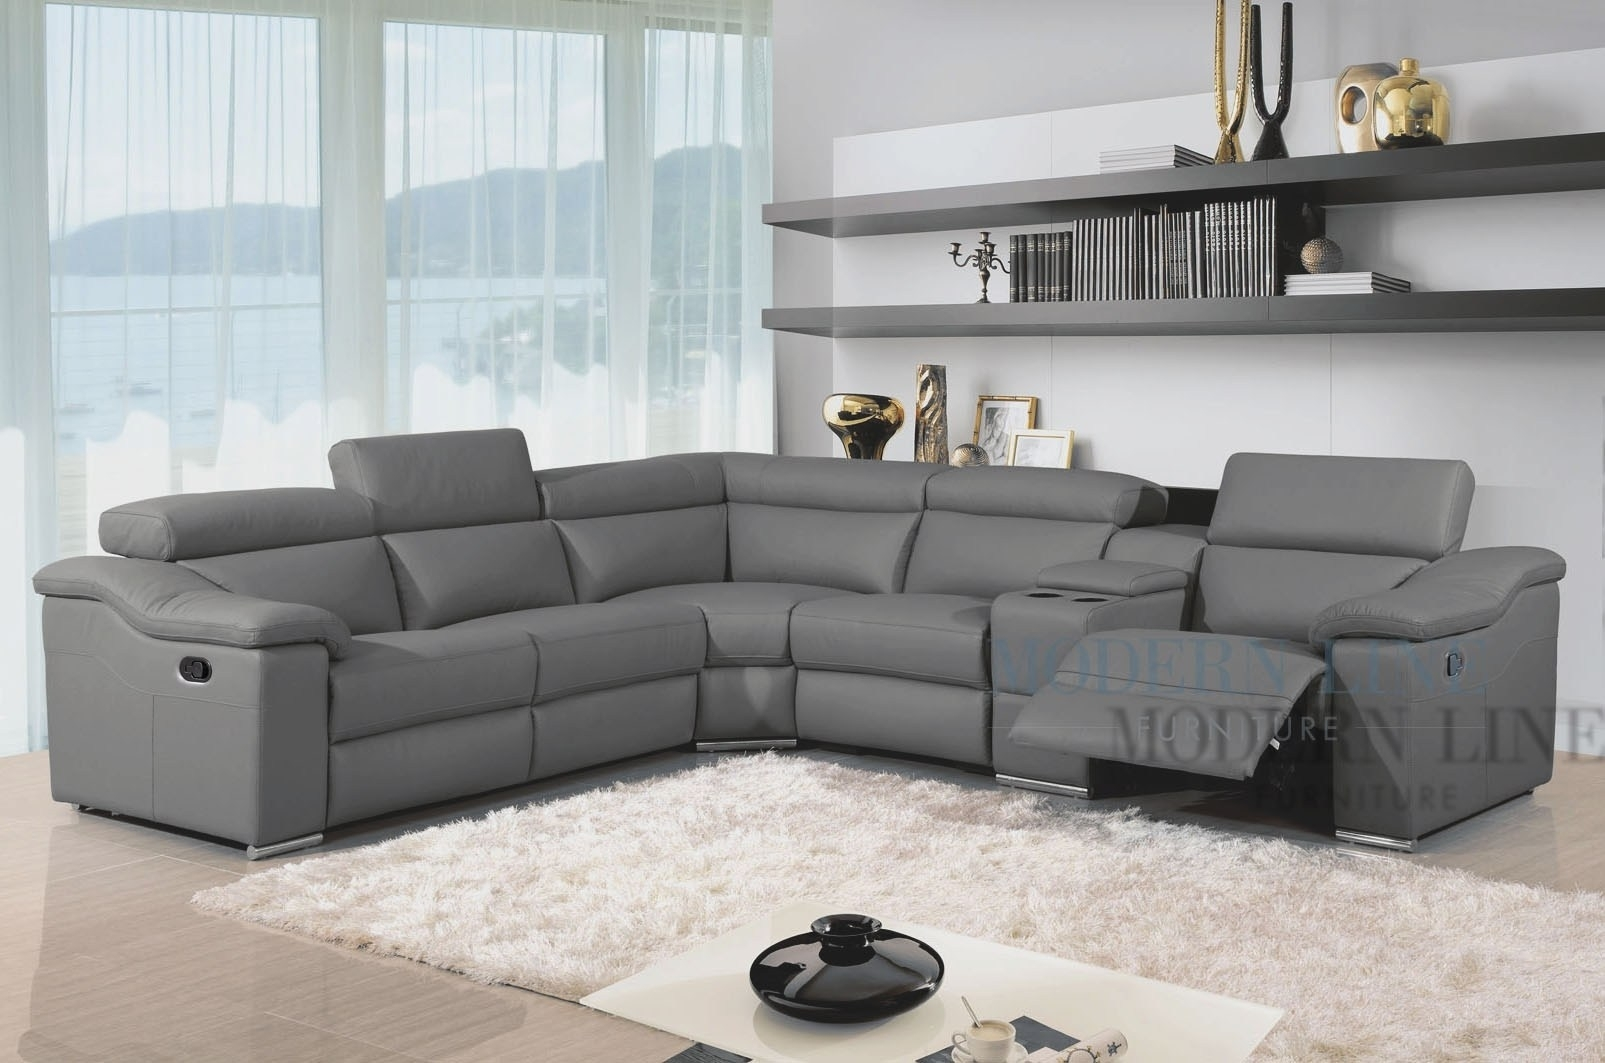 Sectional Sofa : Leather Sleeper Sofa Beige Sectional With Chaise Intended For Value City Sectional Sofas (View 10 of 10)